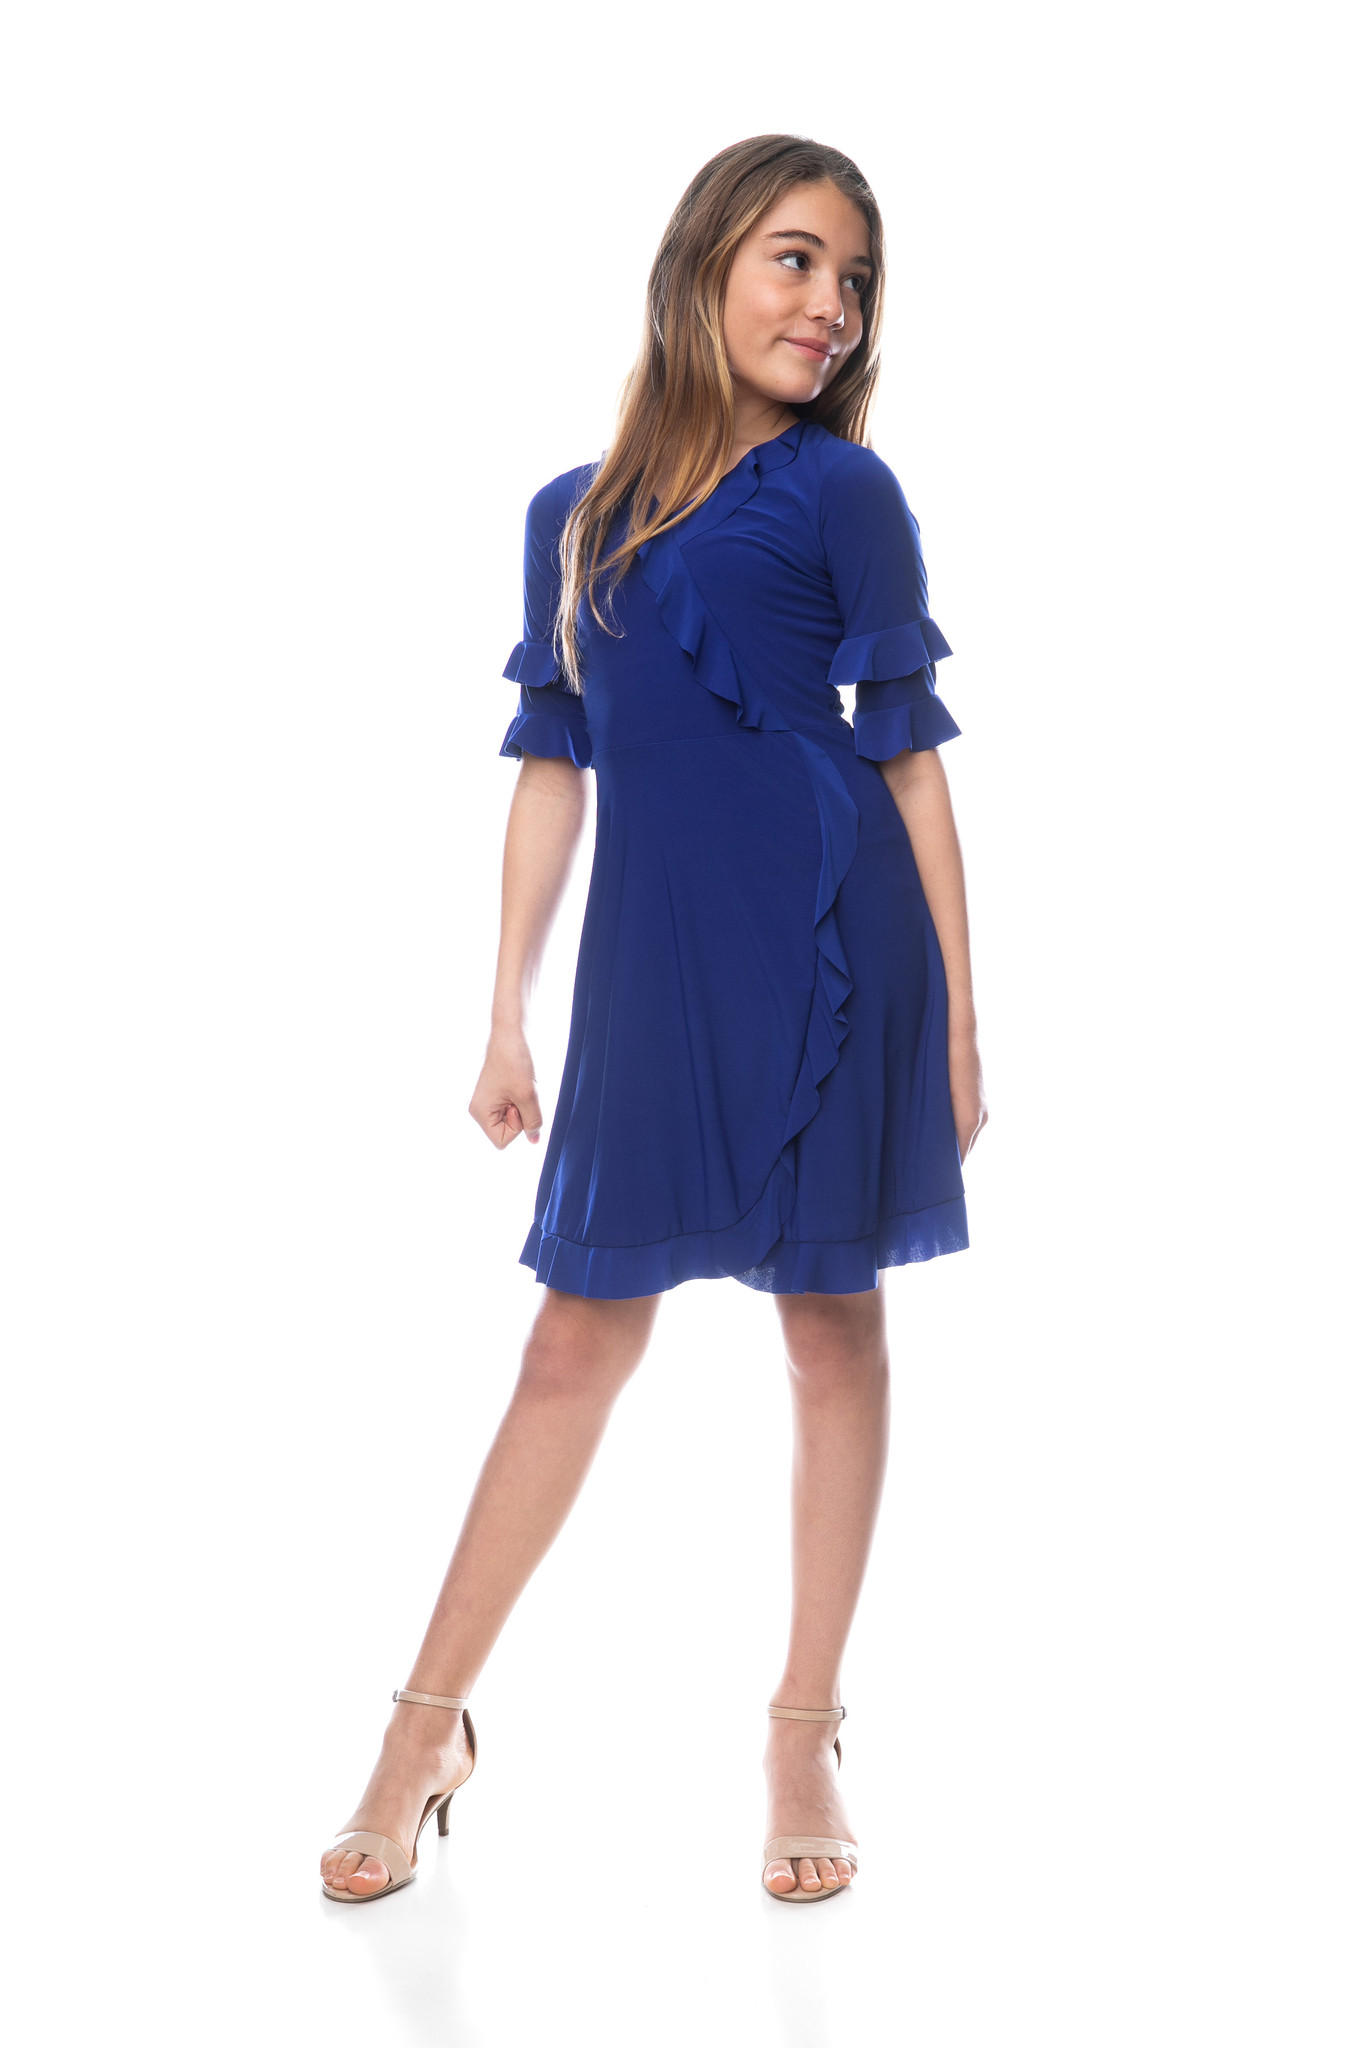 Tween Girls Cobalt Blue Wrap Dress in Longer Length with faux wrap style and ruffle detailing.